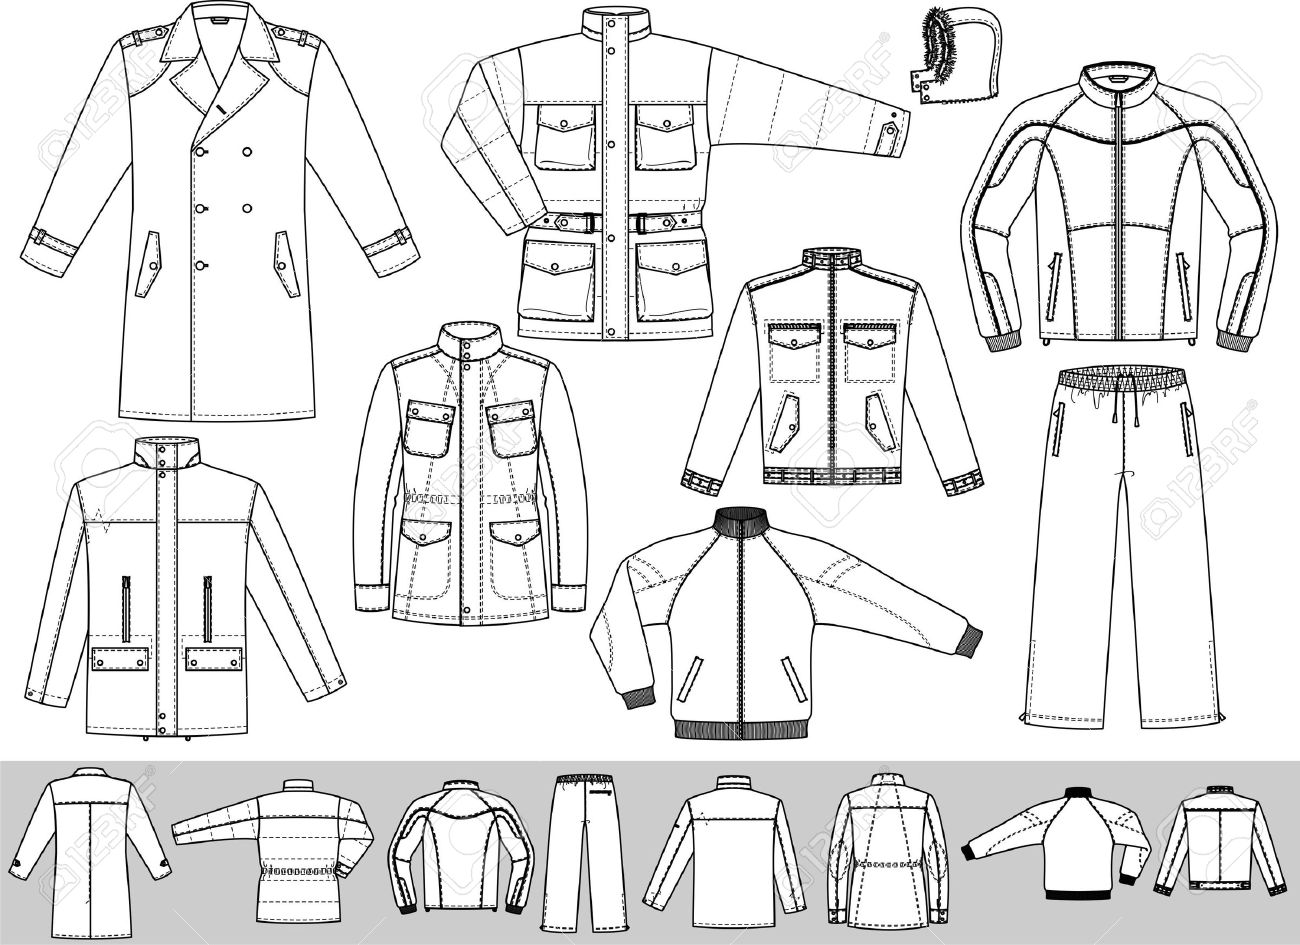 The Clothes For Men Consist Of A Raincoat A Jacket And A Sports